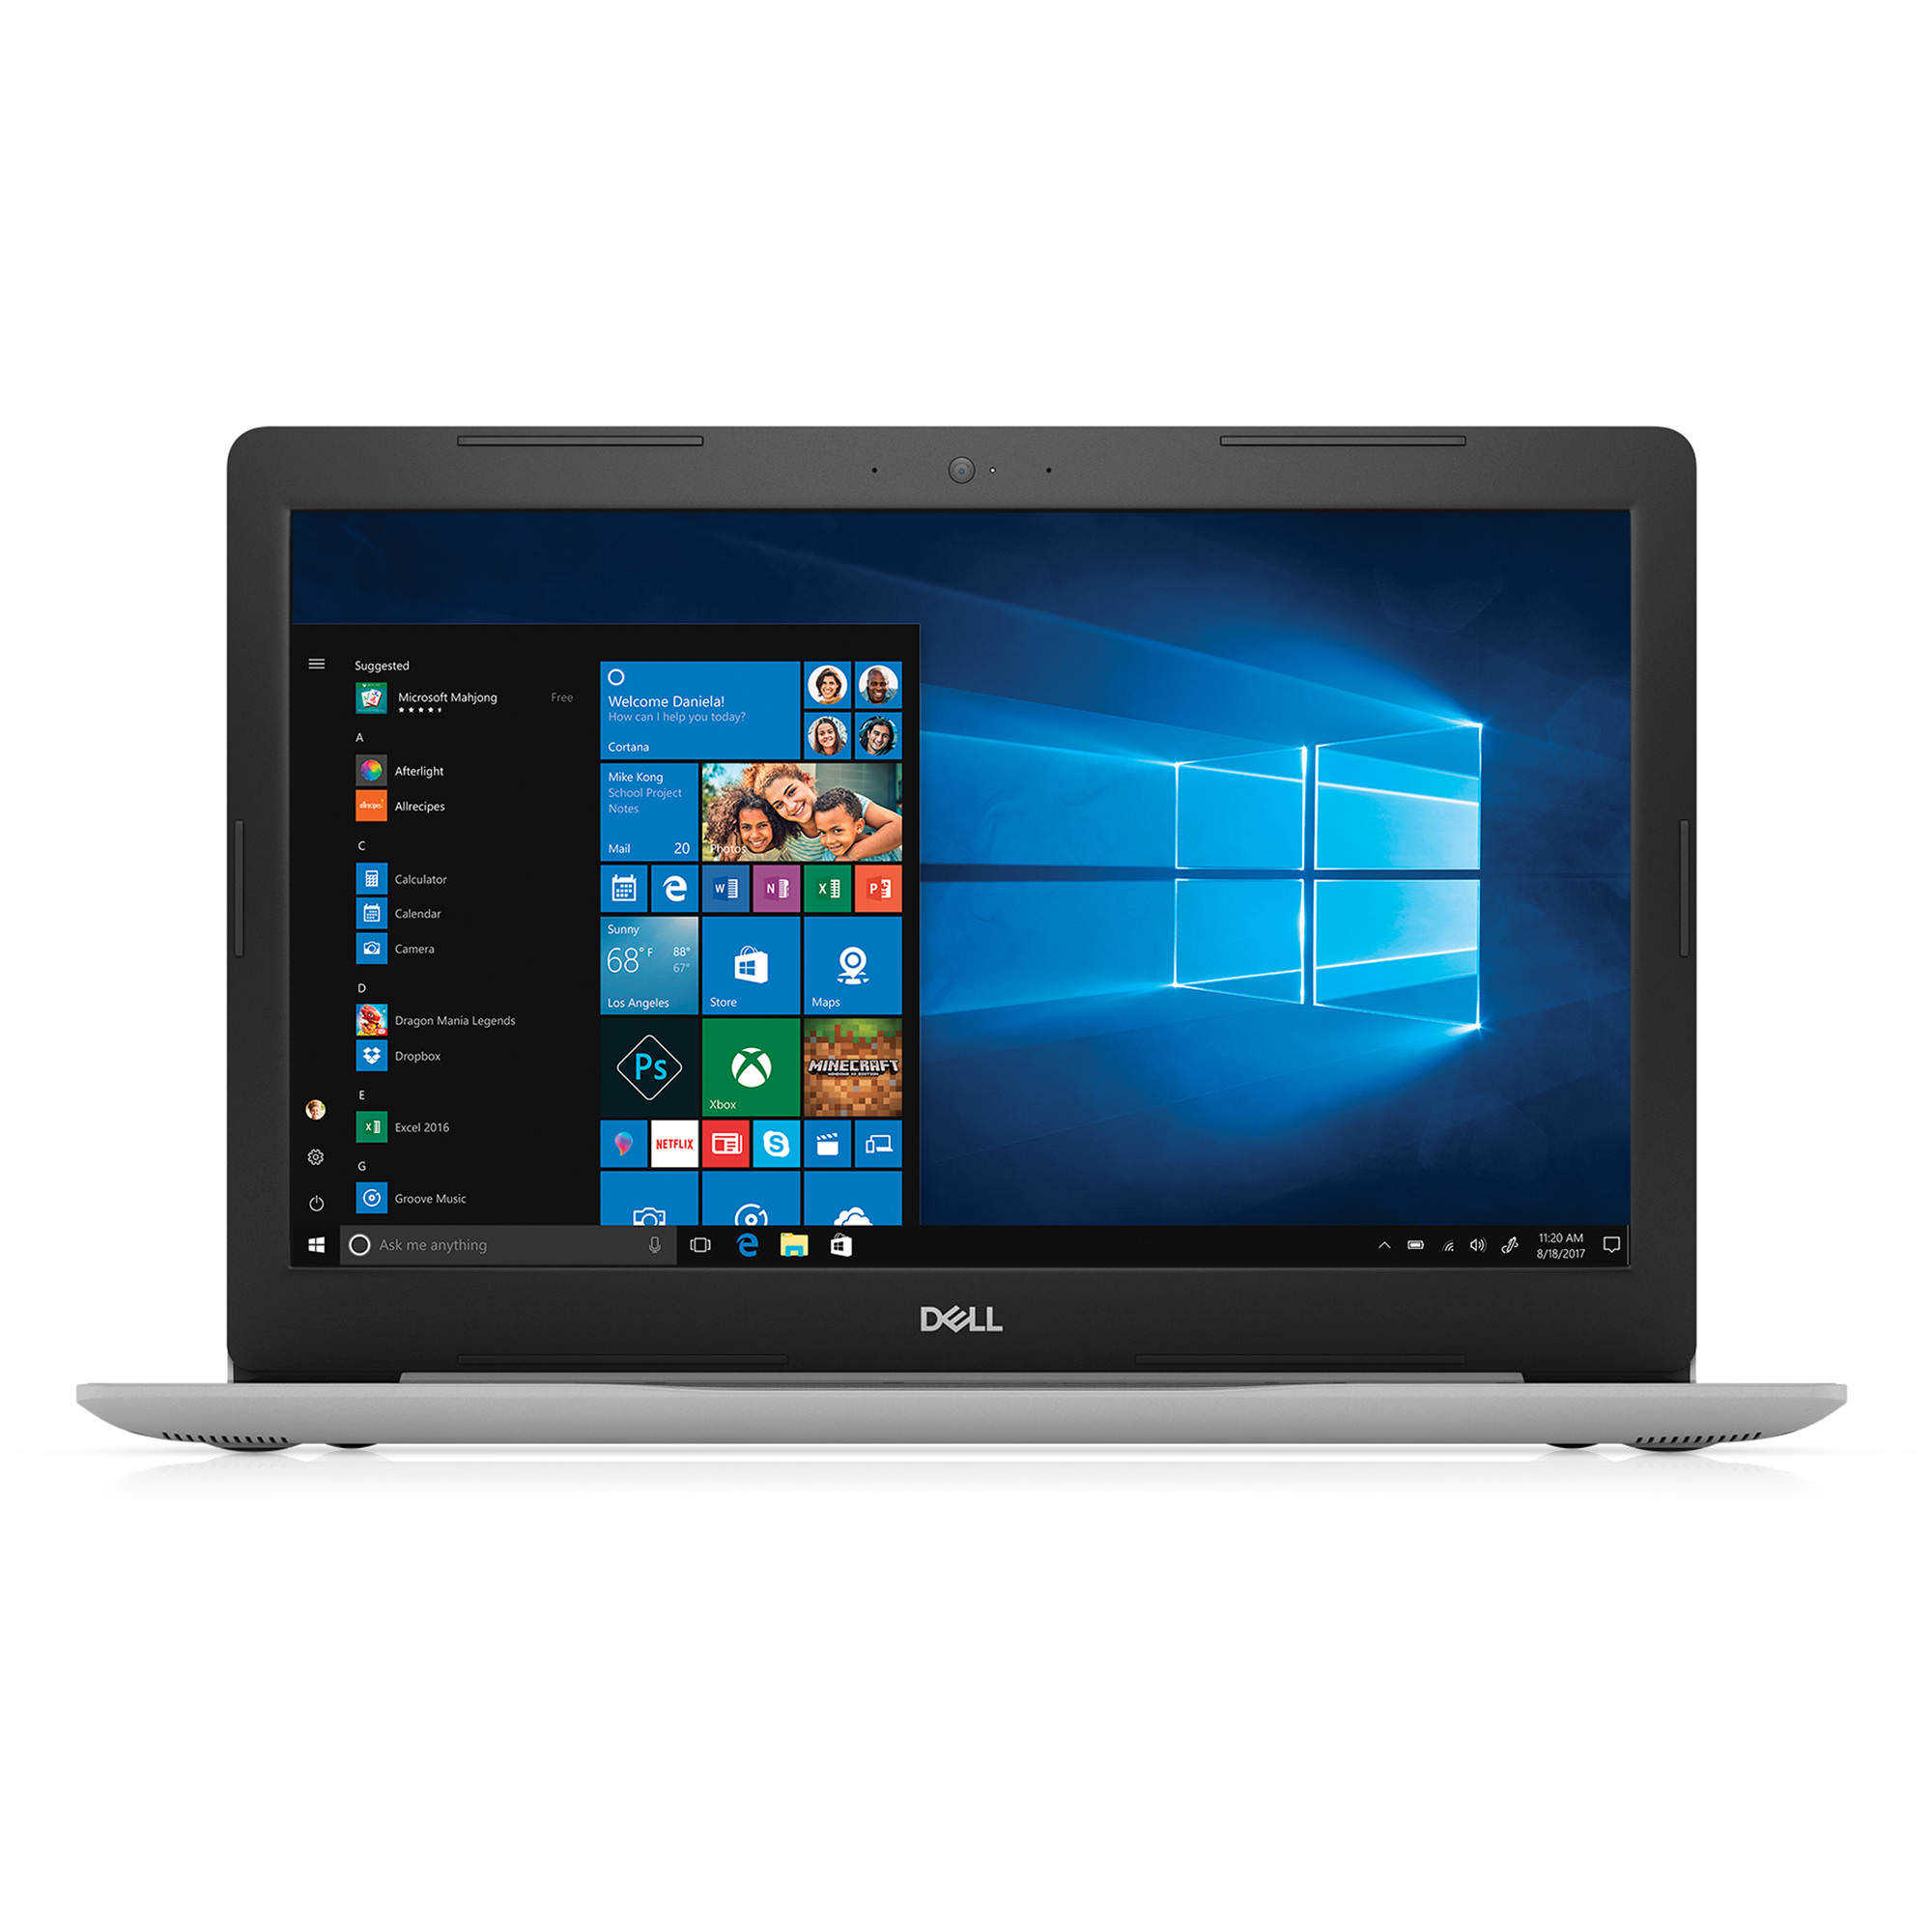 Dell Inspiron 5000 15.6' LCD Notebook - Intel Core i5 (8th Gen) i5-8250U Quad-core (4 Core) 1.6GHz - 8GB DDR4 SDRAM - 1TB HDD - Windows 10 Pro